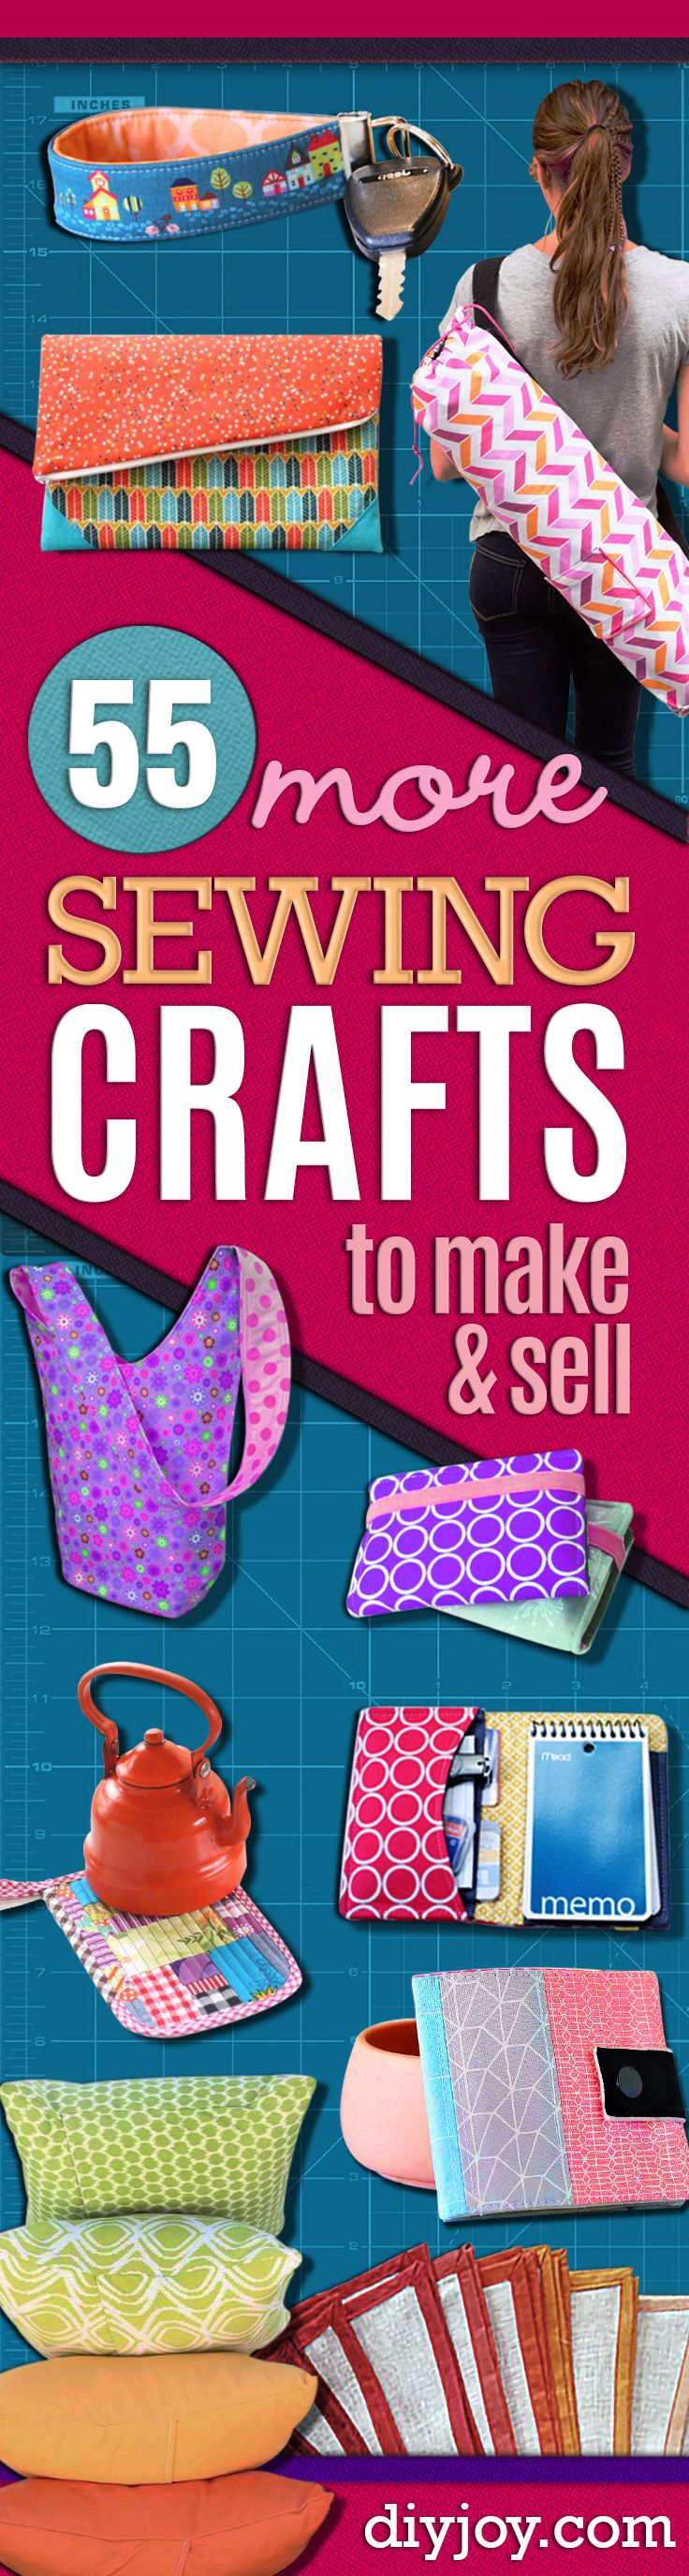 17 best images about small sewing projects on pinterest for Best selling craft items to make